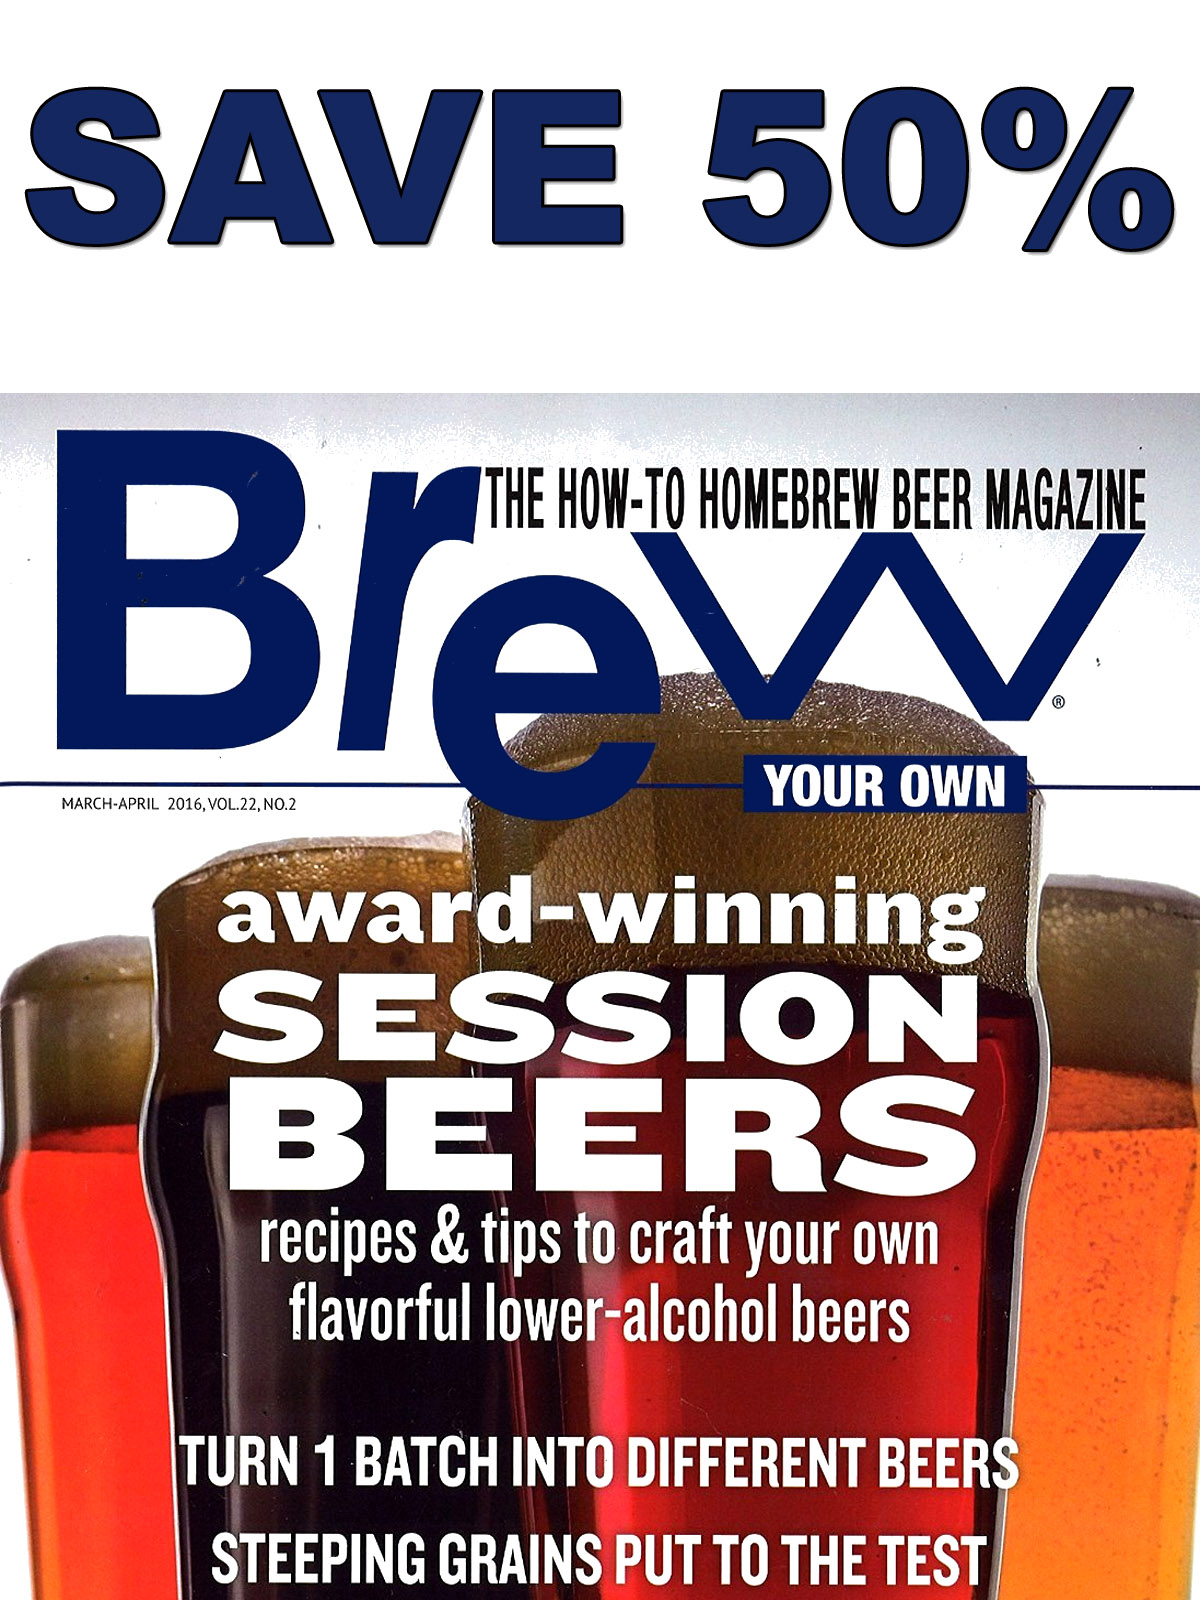 Home Brewer Promo Code for Save 50% On A Subscription to Brew Your Own Magazine  Coupon Code